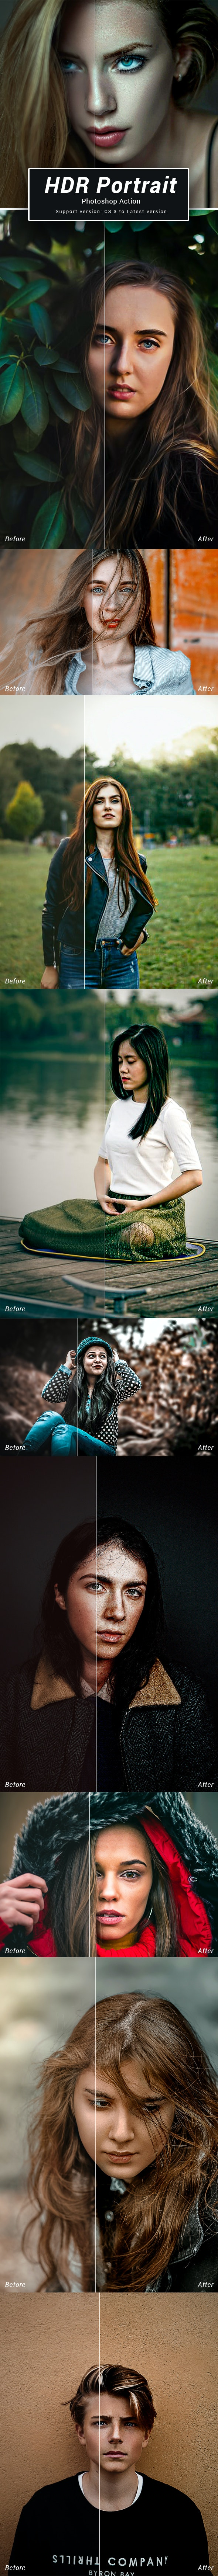 HDR Photoshop Action - Photo Effects Actions